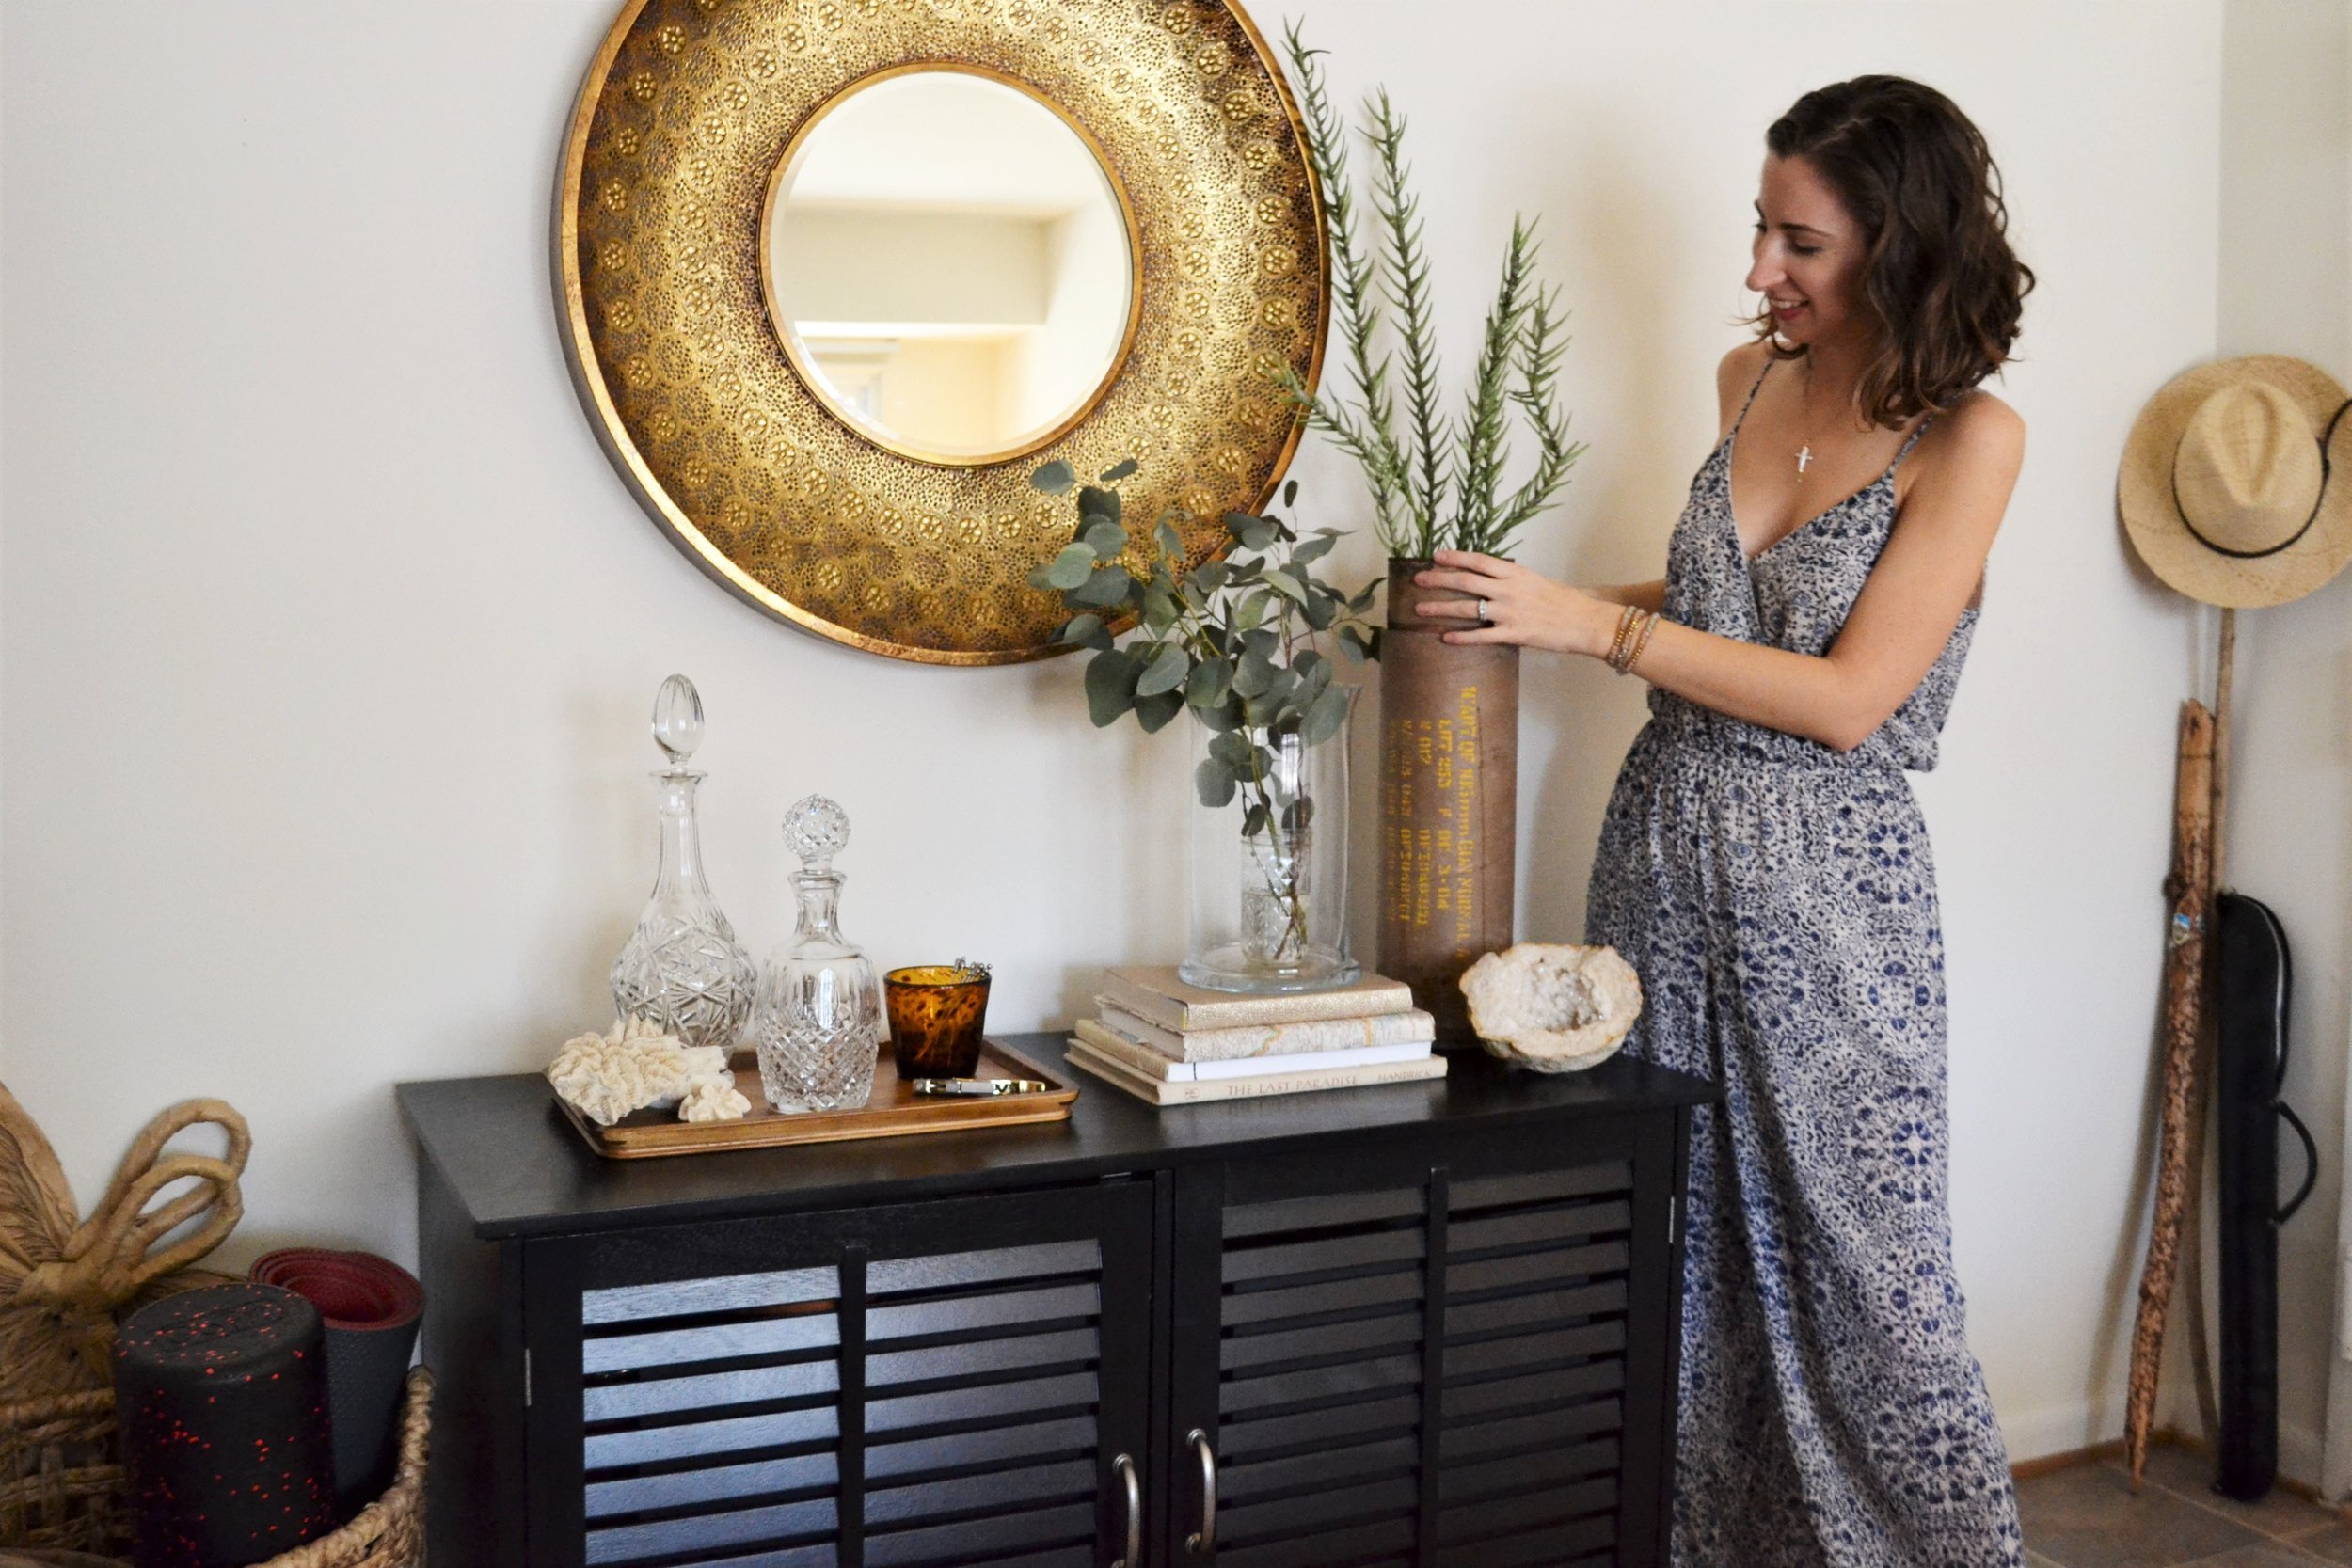 1 Entry Styled 3 Ways - Making Room for Peace 14.JPG